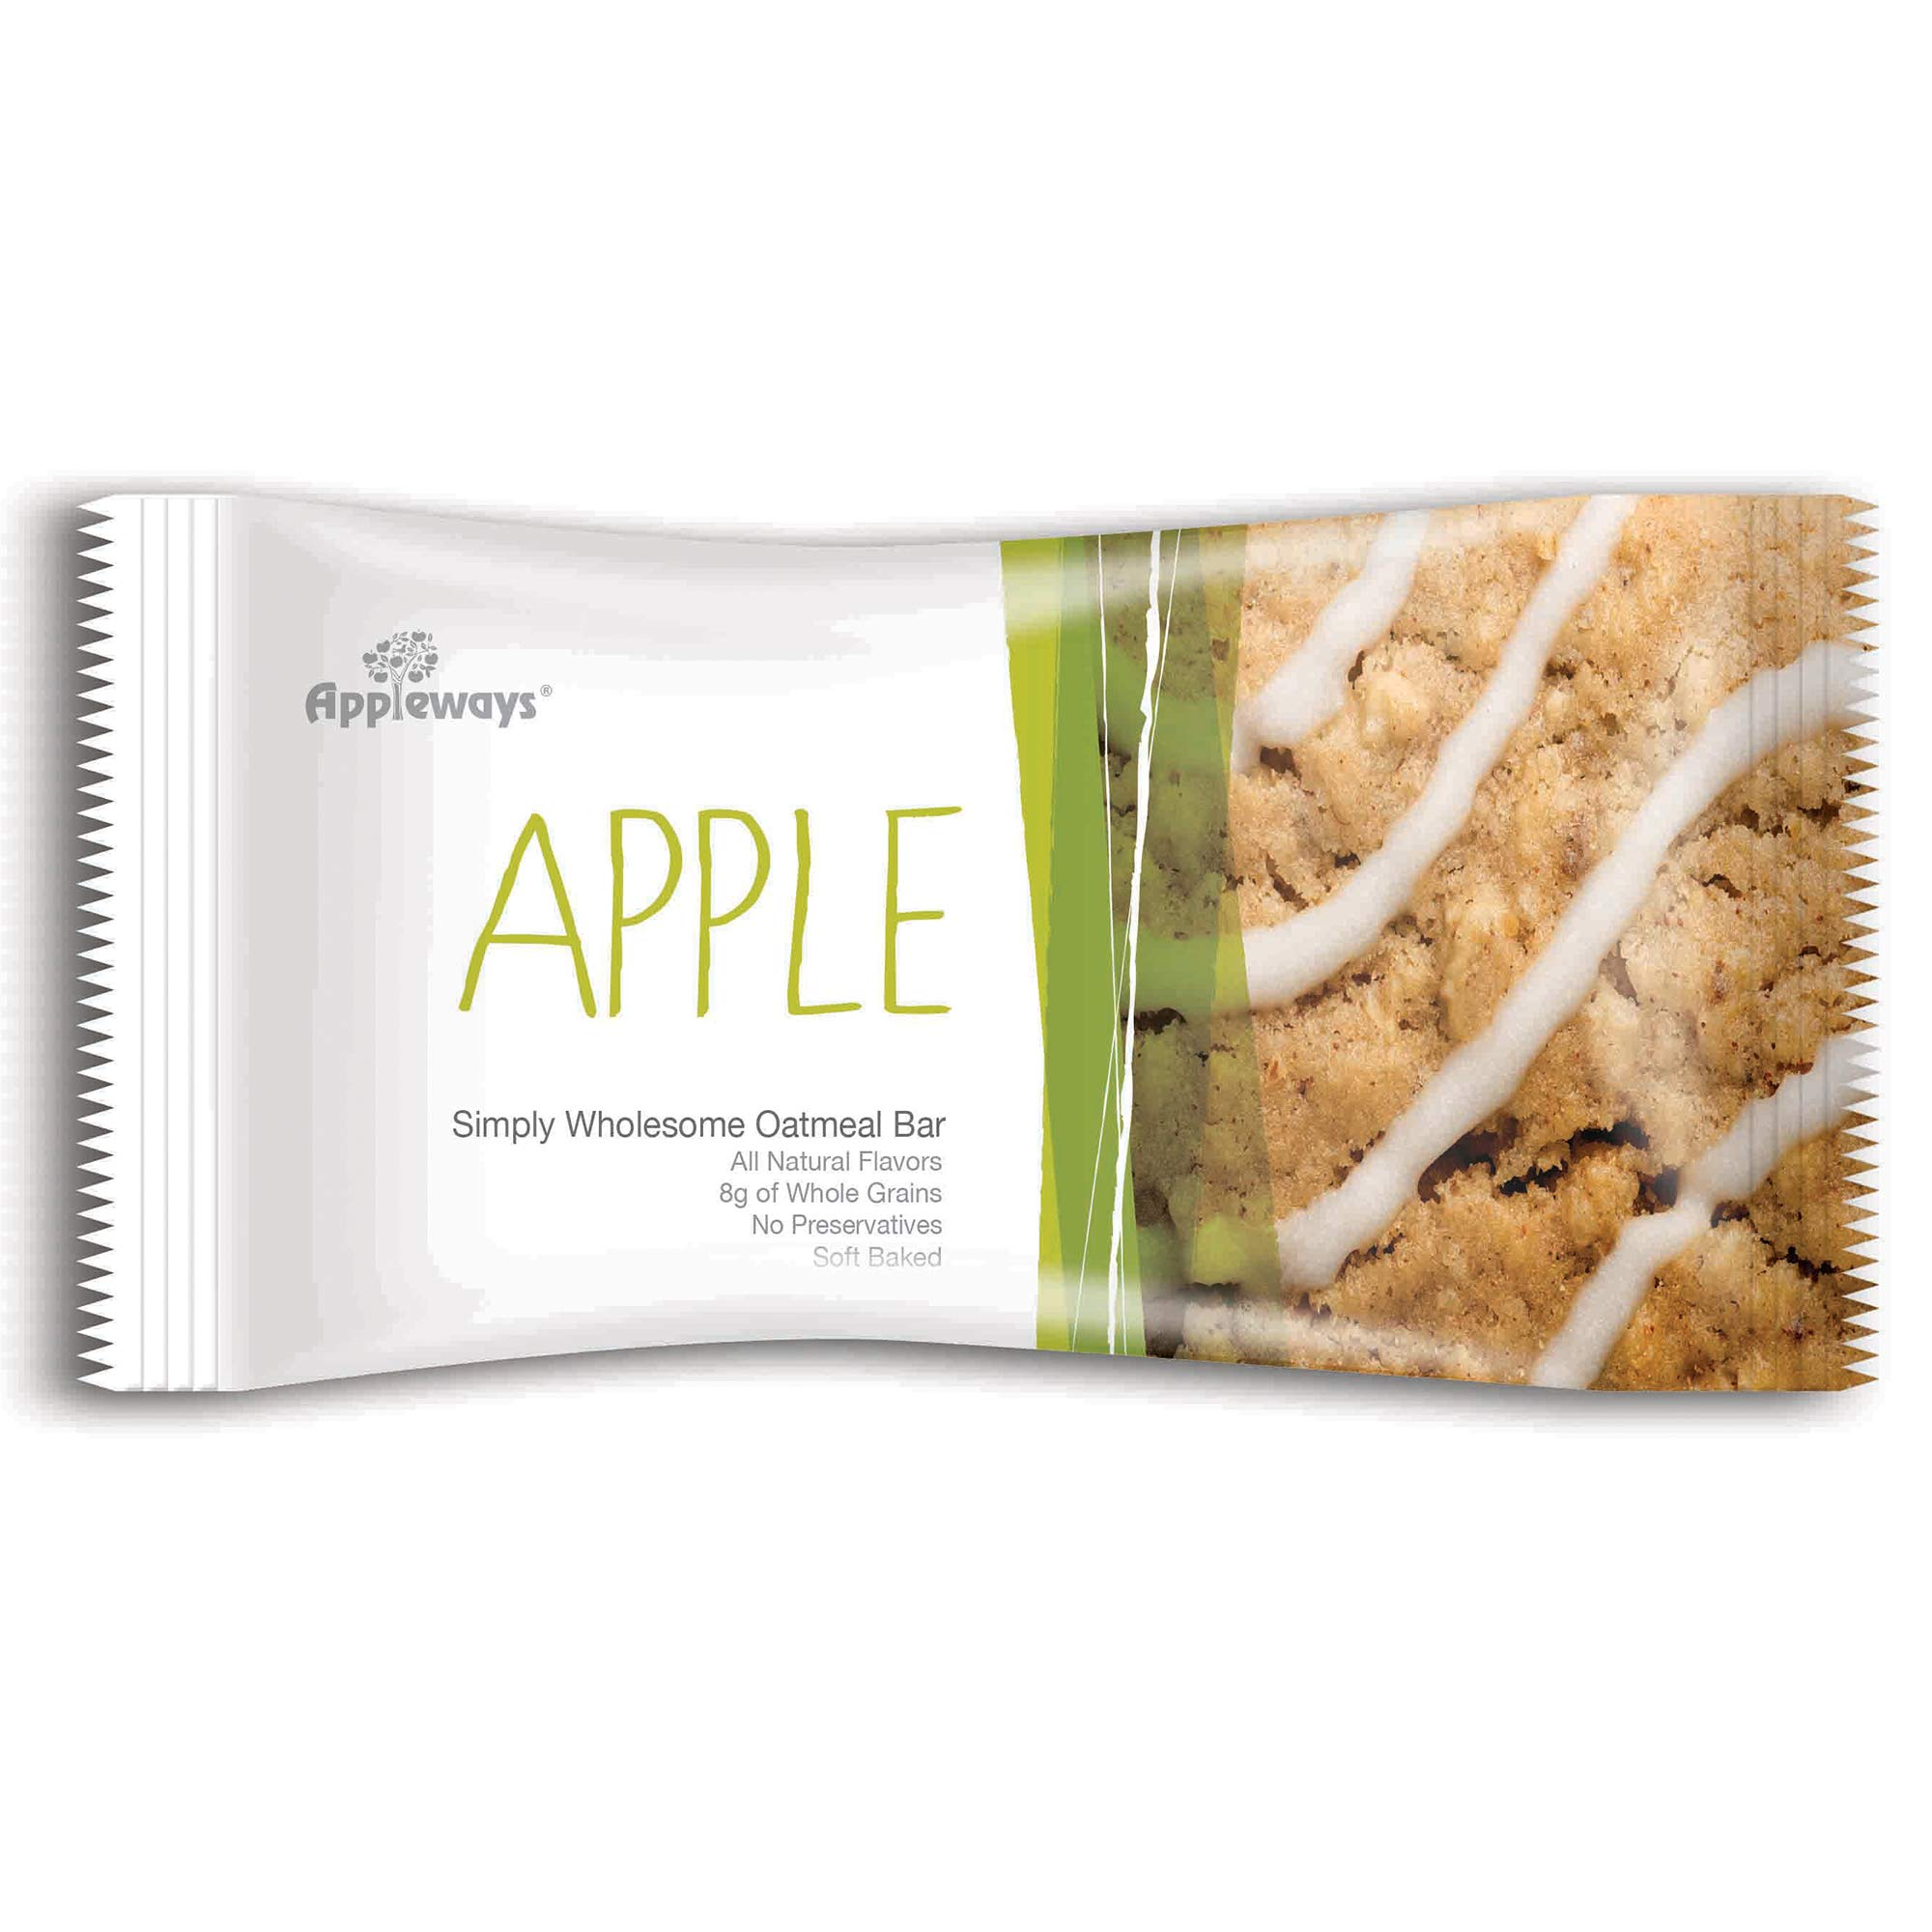 Appleways 2.4oz Simply Wholesome Oatmeal Bars, Apple, 160ct